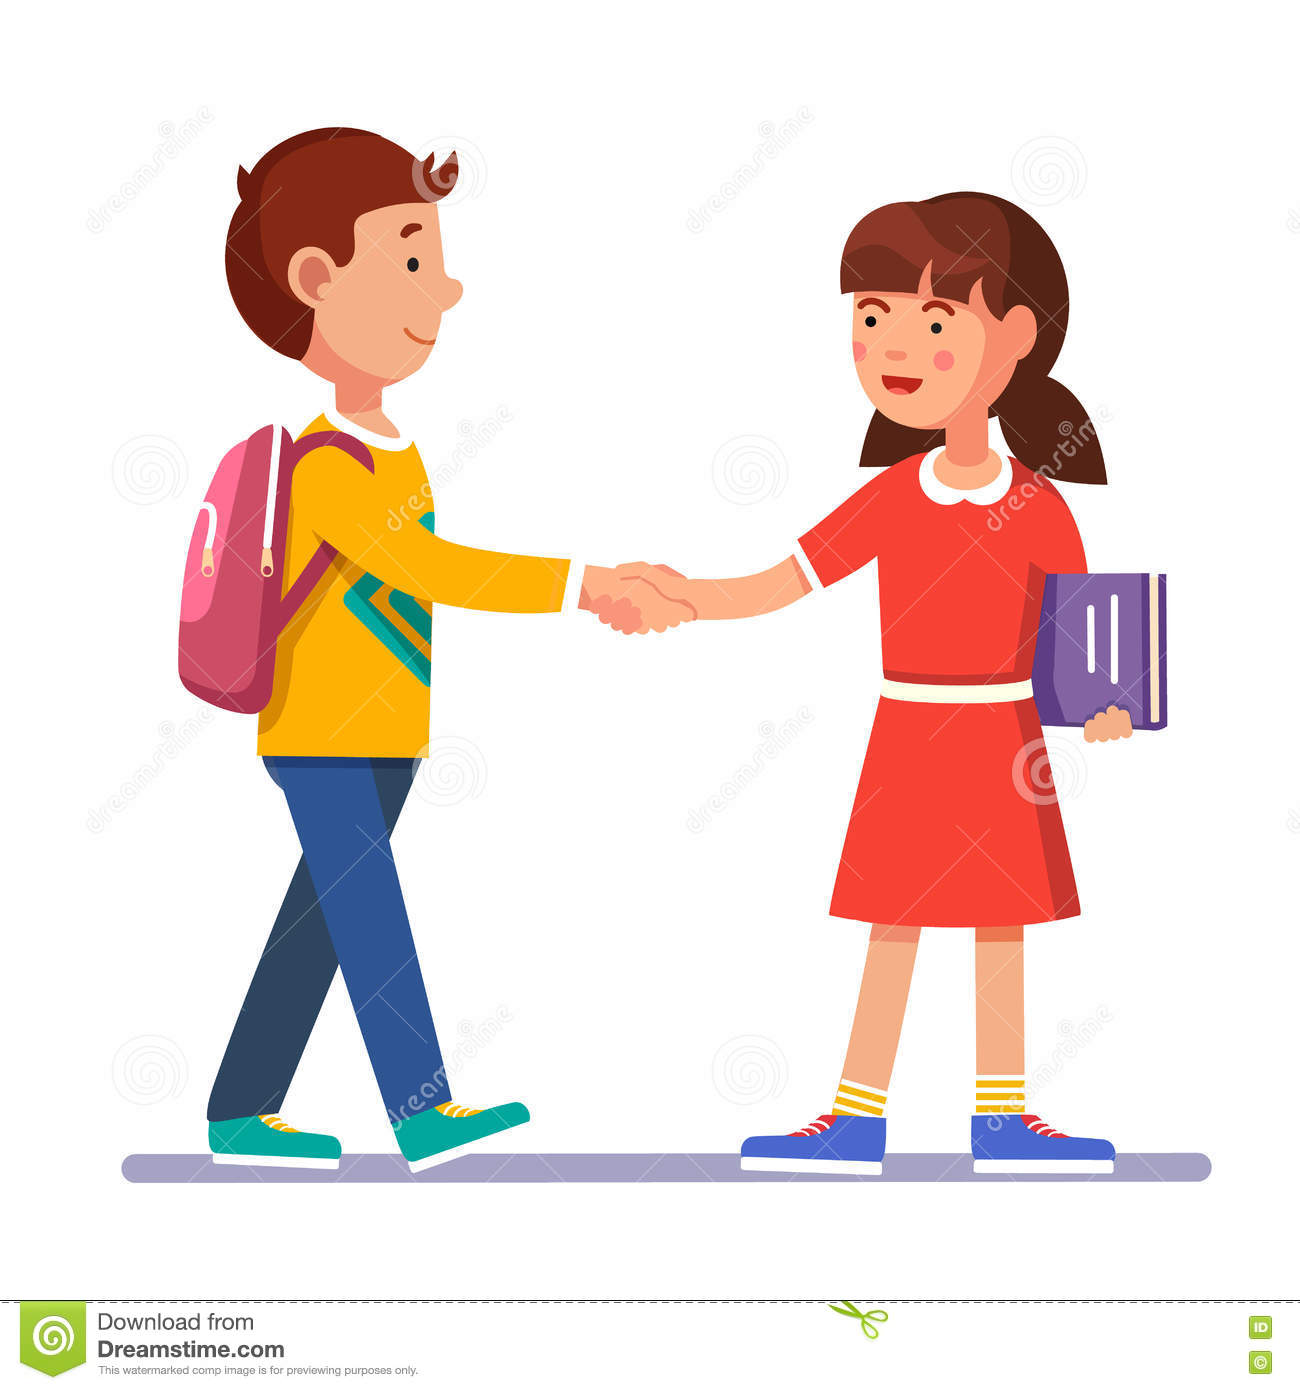 Girls Shaking Hands Clipart.